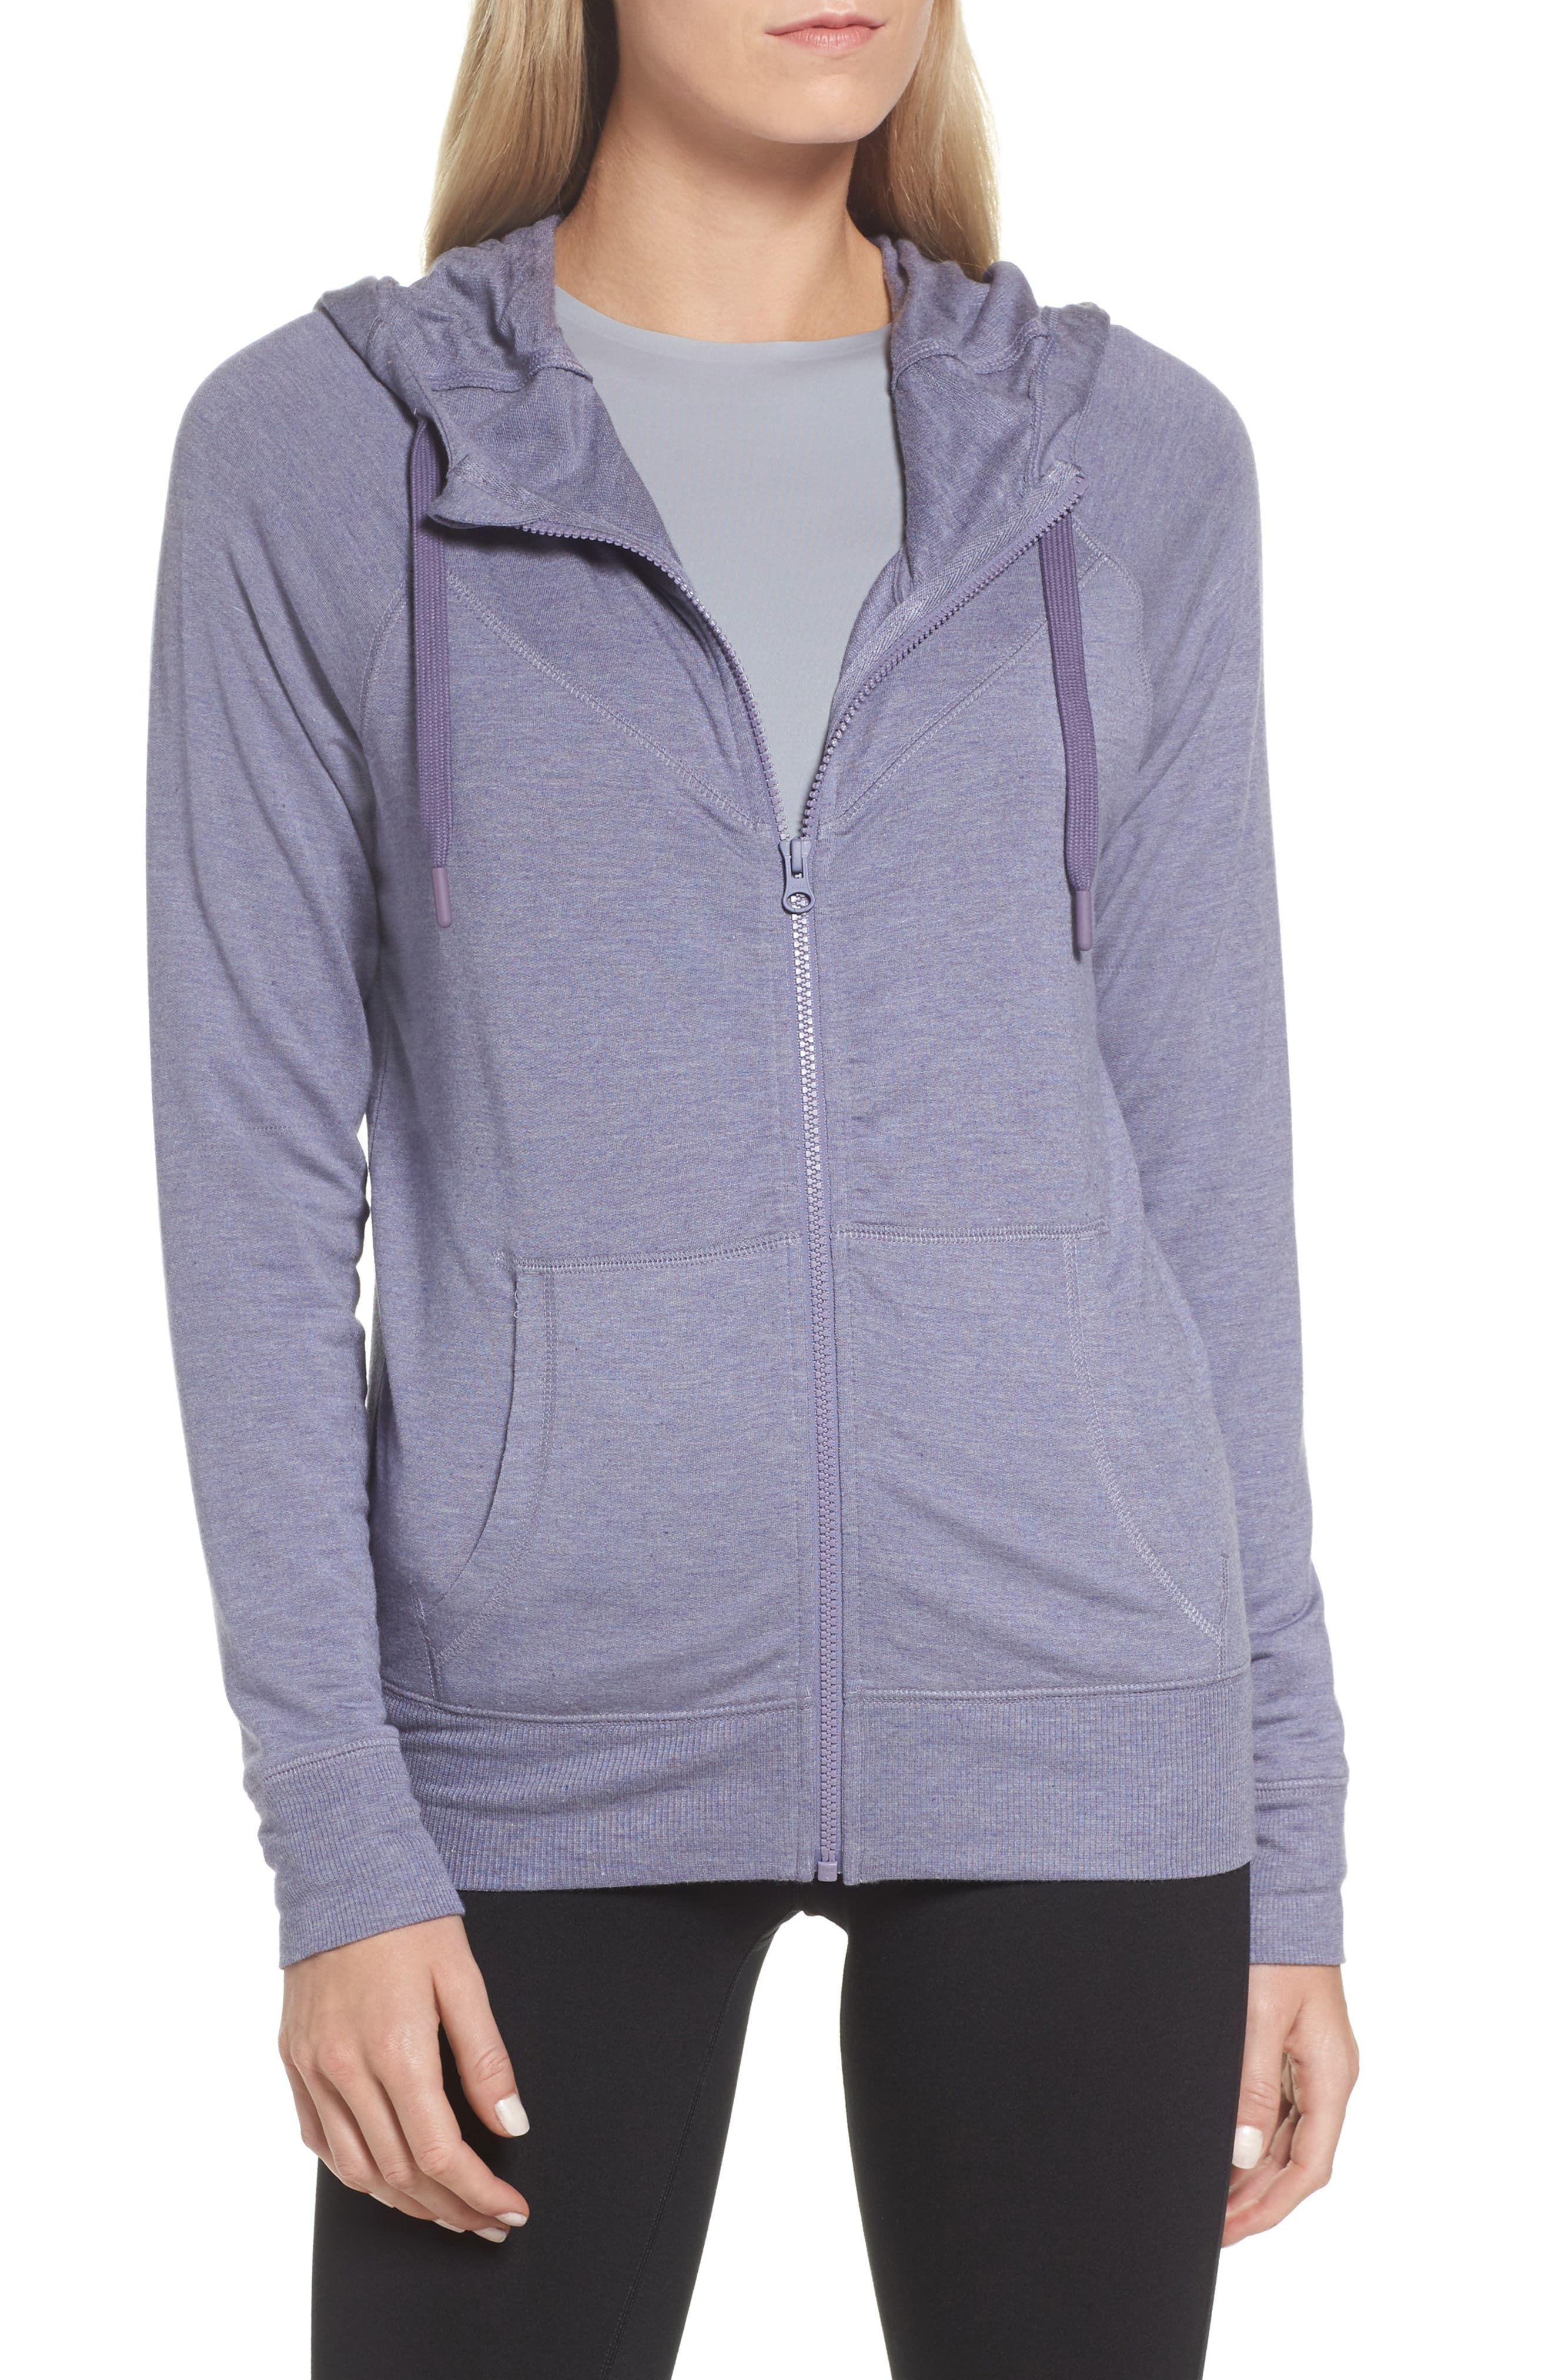 Well Played Zip Hoodie,                         Main,                         color, Purple Cadet Heather